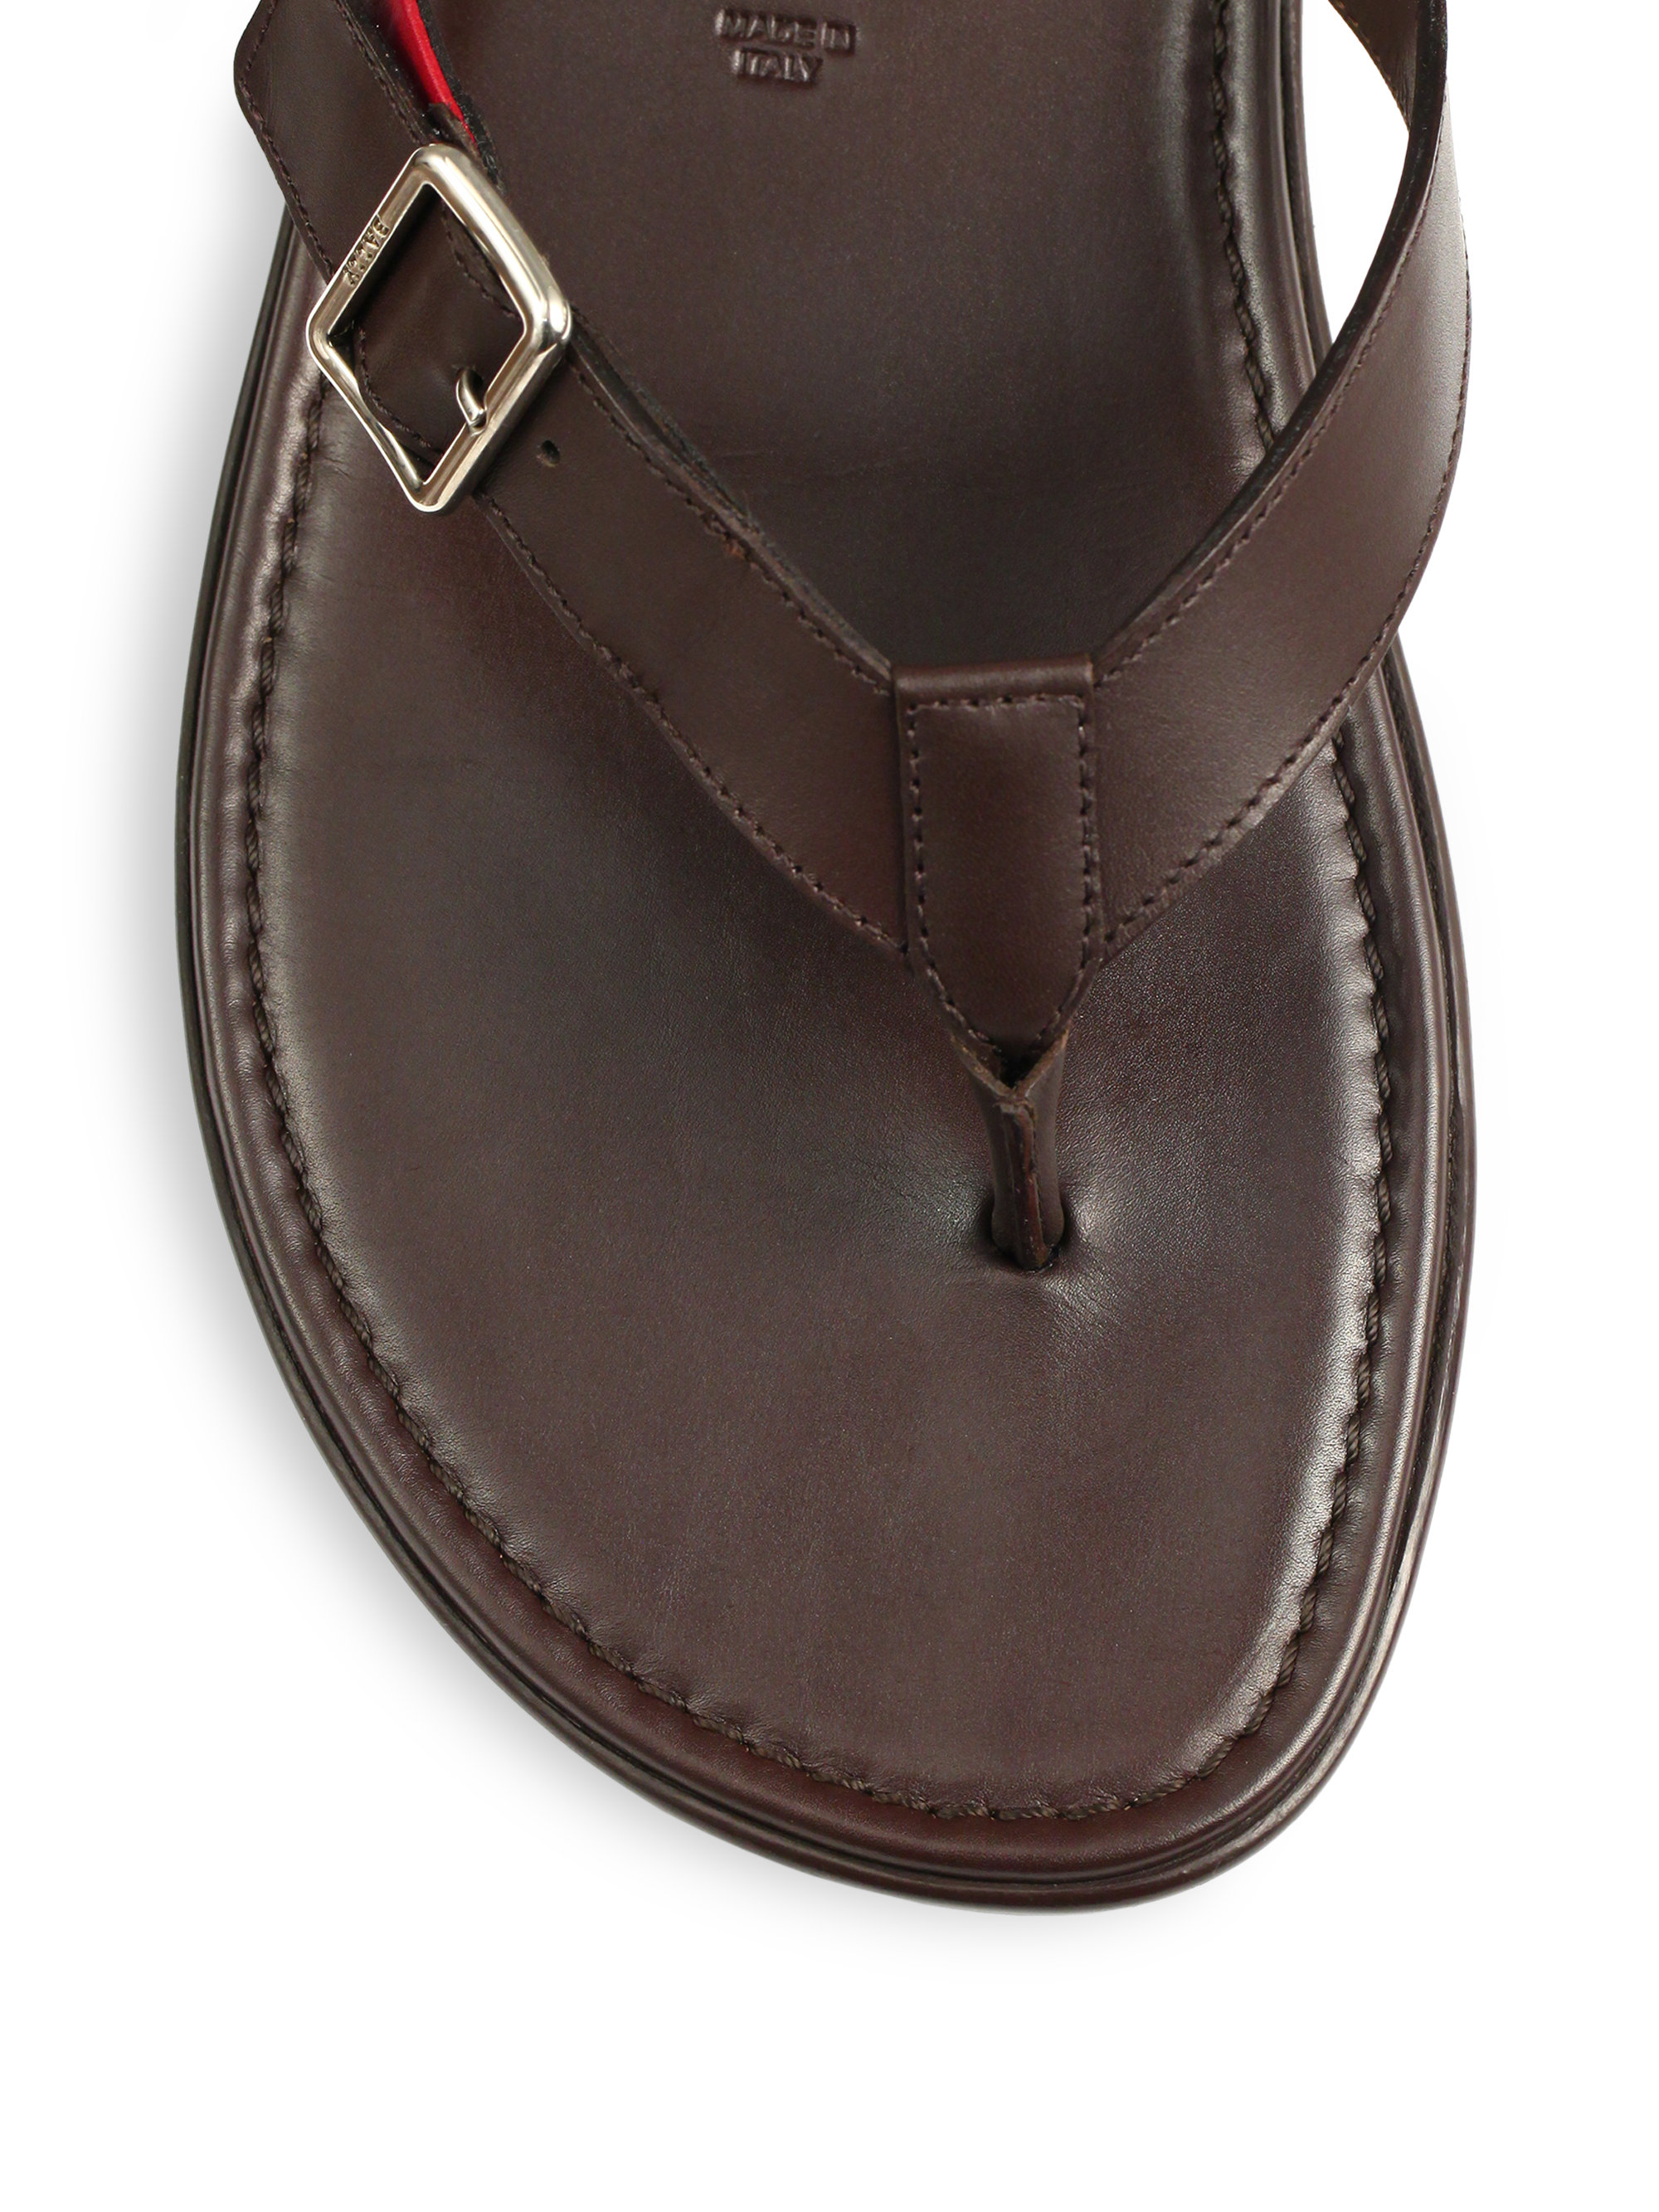 bally trainspotting leather sandals in brown lyst